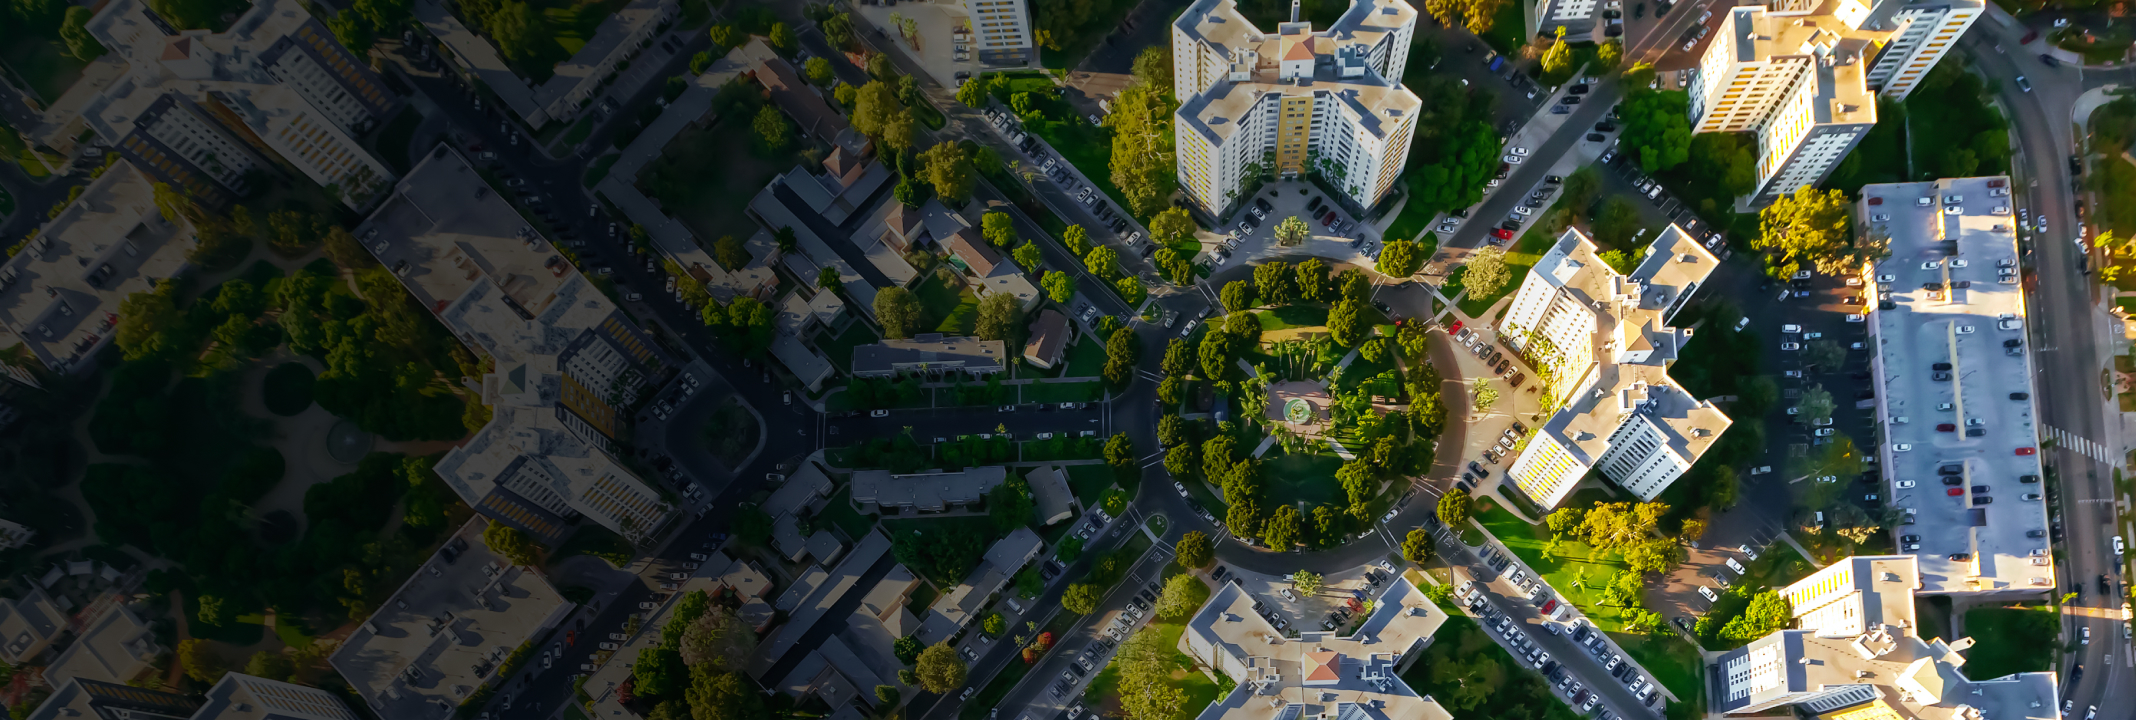 Overhead view of apartment buildings in a city